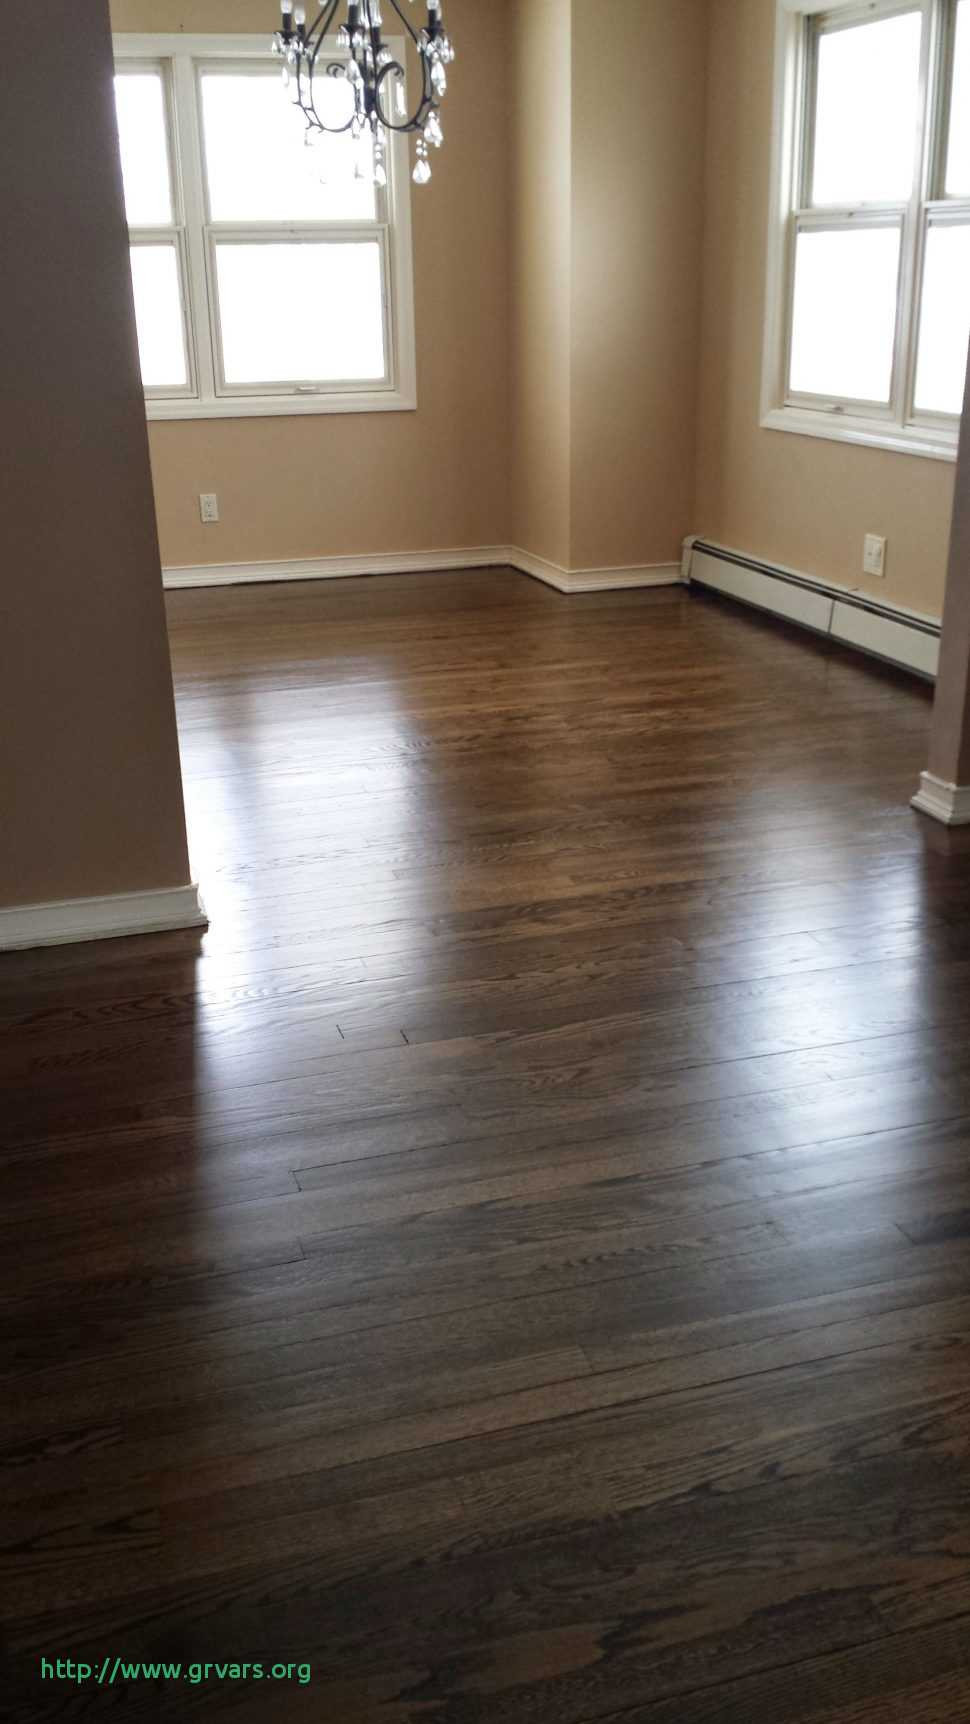 pictures of matte hardwood floors of 22 nouveau how to get stains out of wood floors ideas blog pertaining to how to get stains out of wood floors inspirant amusing refinishingod floors diy network refinish parquet